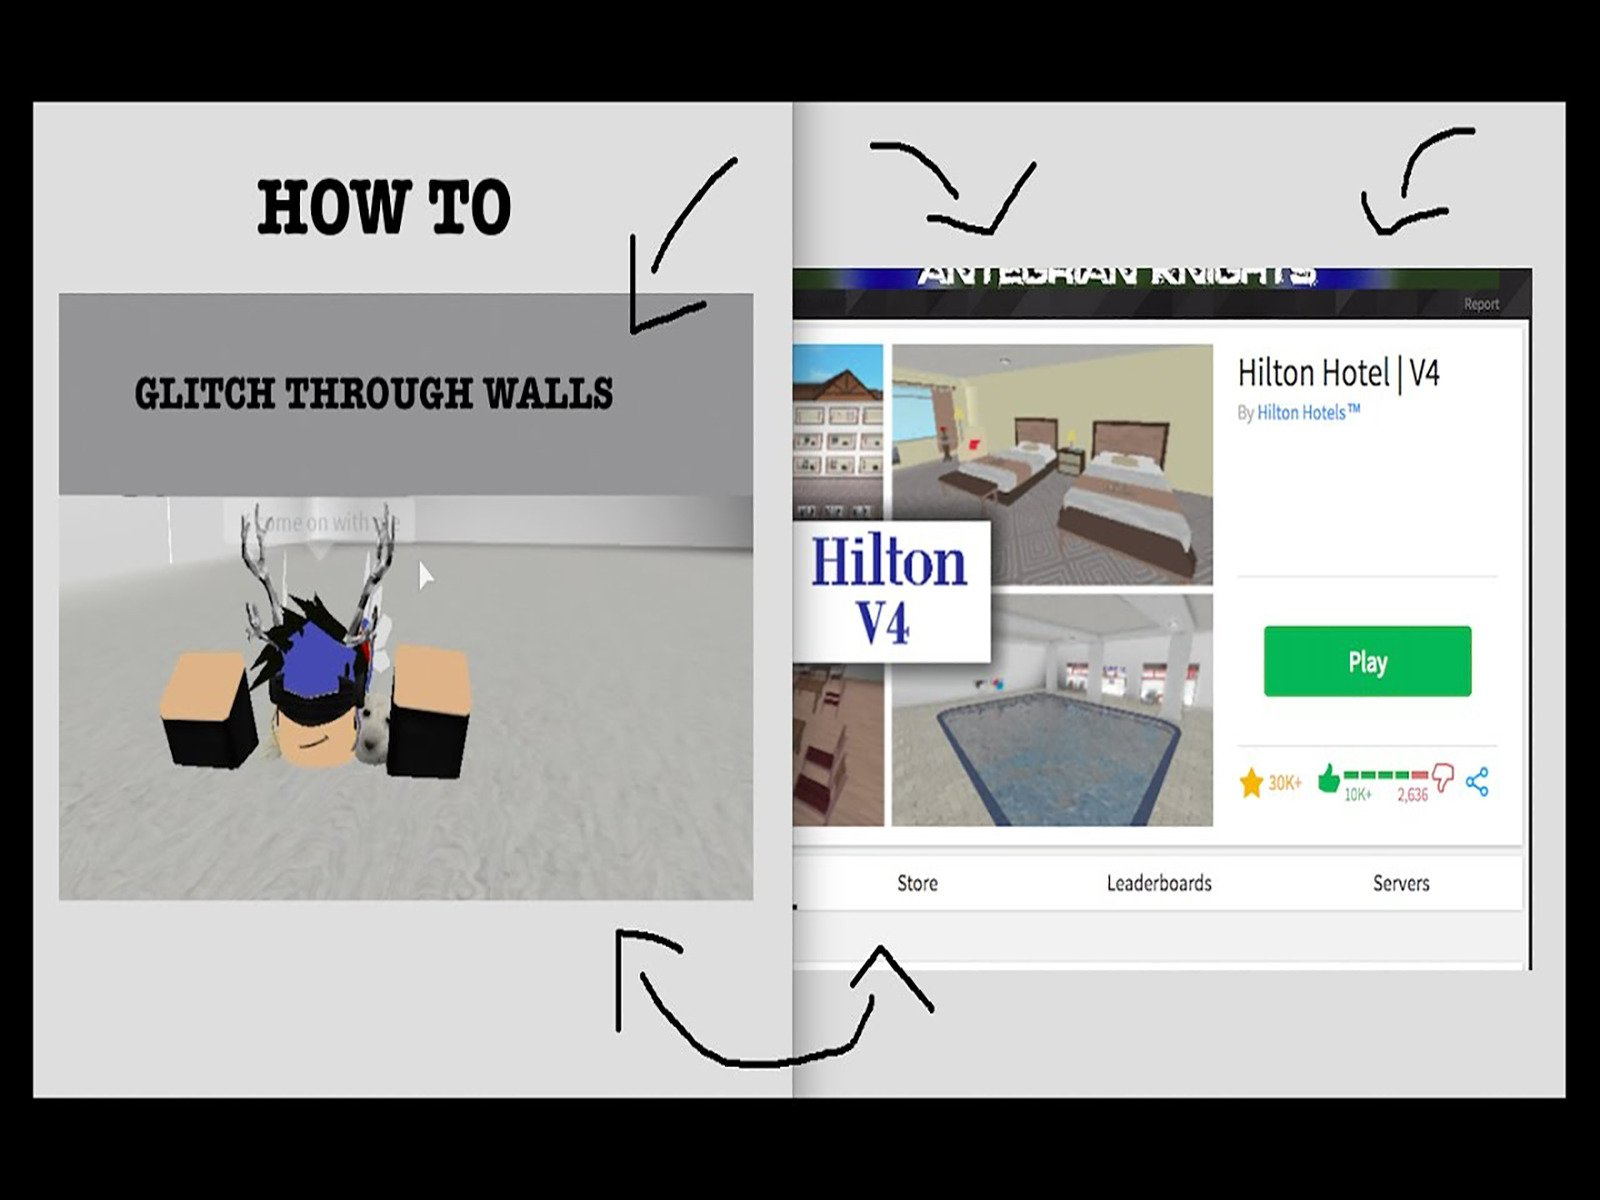 Roblox Hilton Hotels Questions Watch Too Quick Prime Video